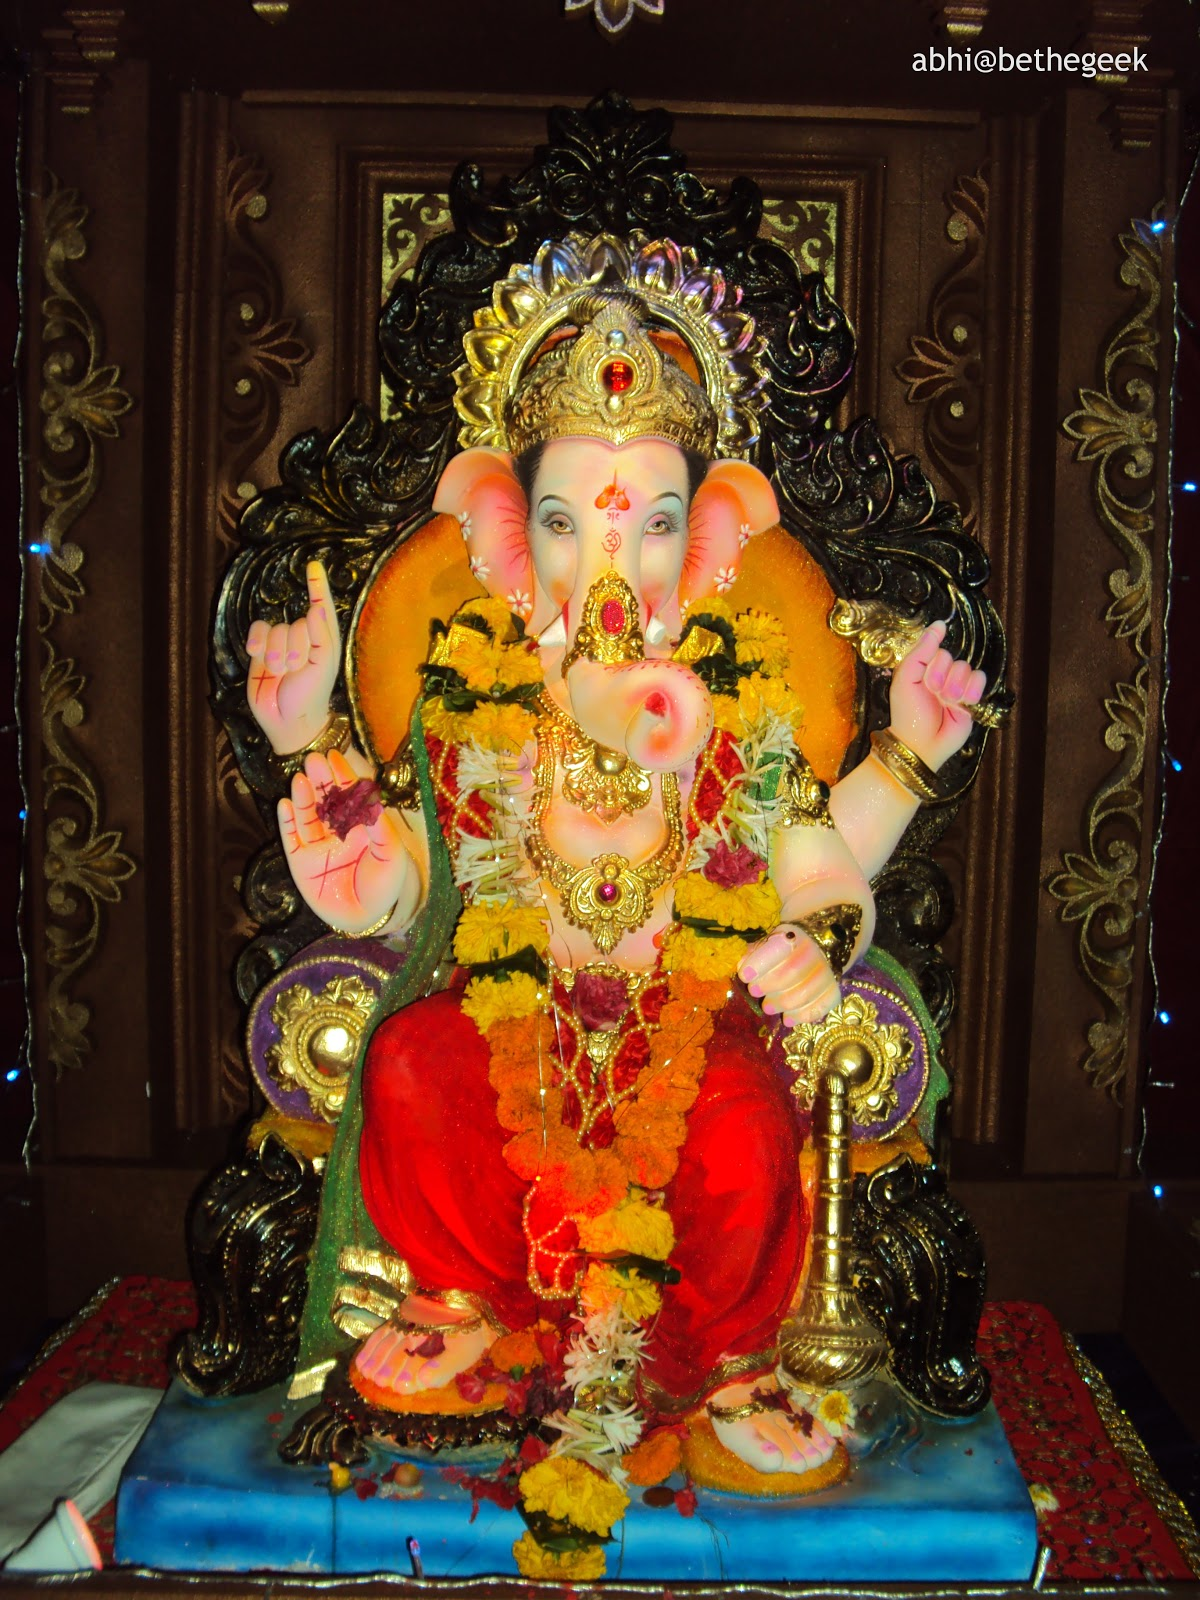 essay on ganesh chaturthi essay on ganesh chaturthi hindi essay ganesh chaturthi